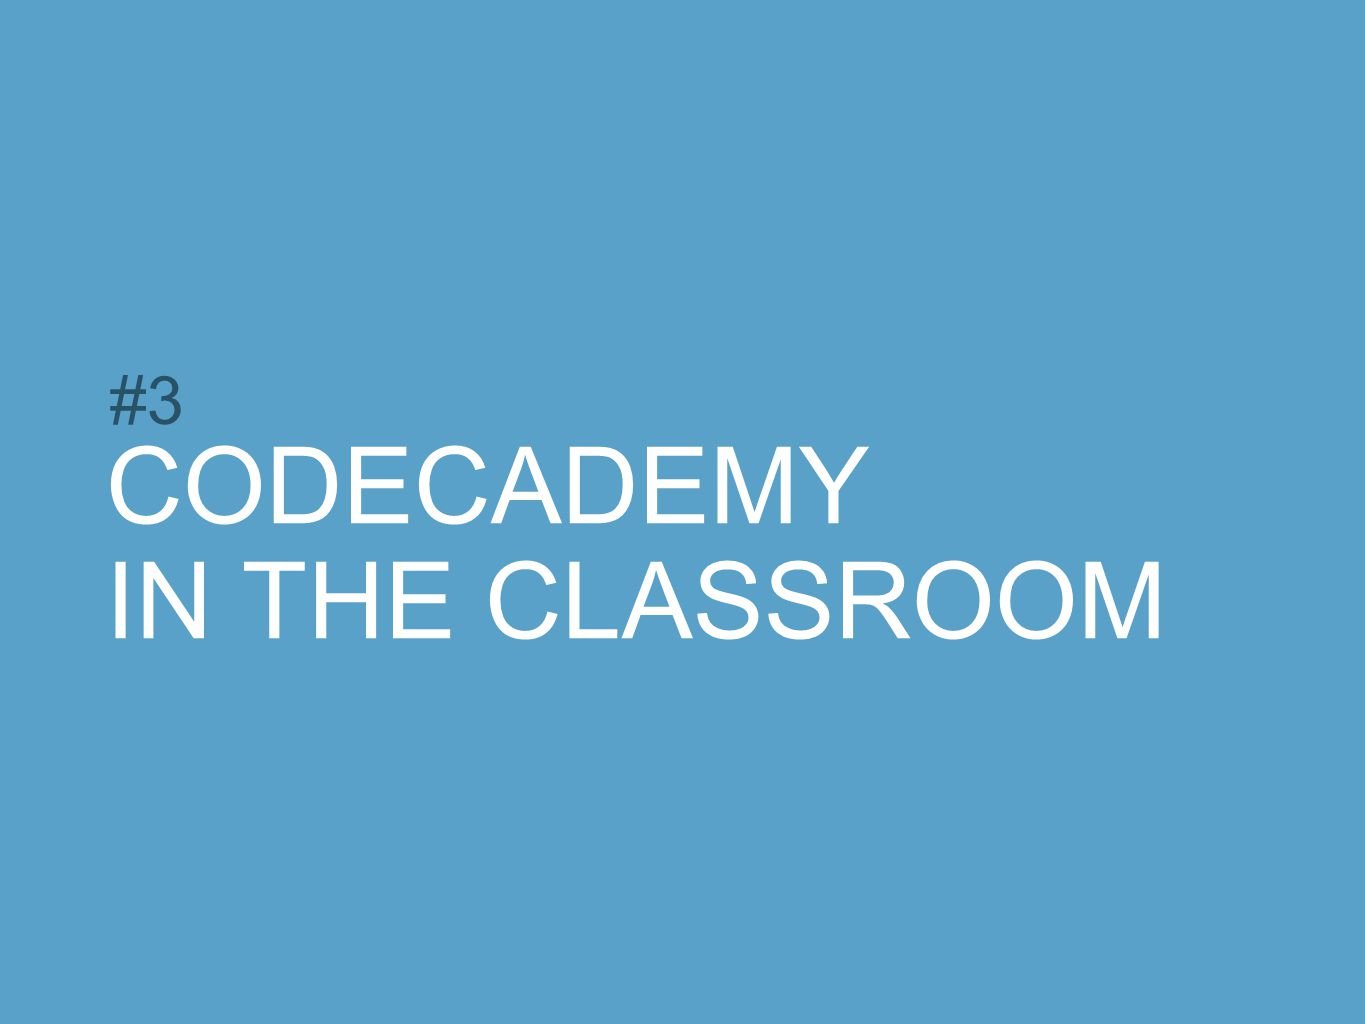 CODECADEMY IN THE CLASSROOM #3